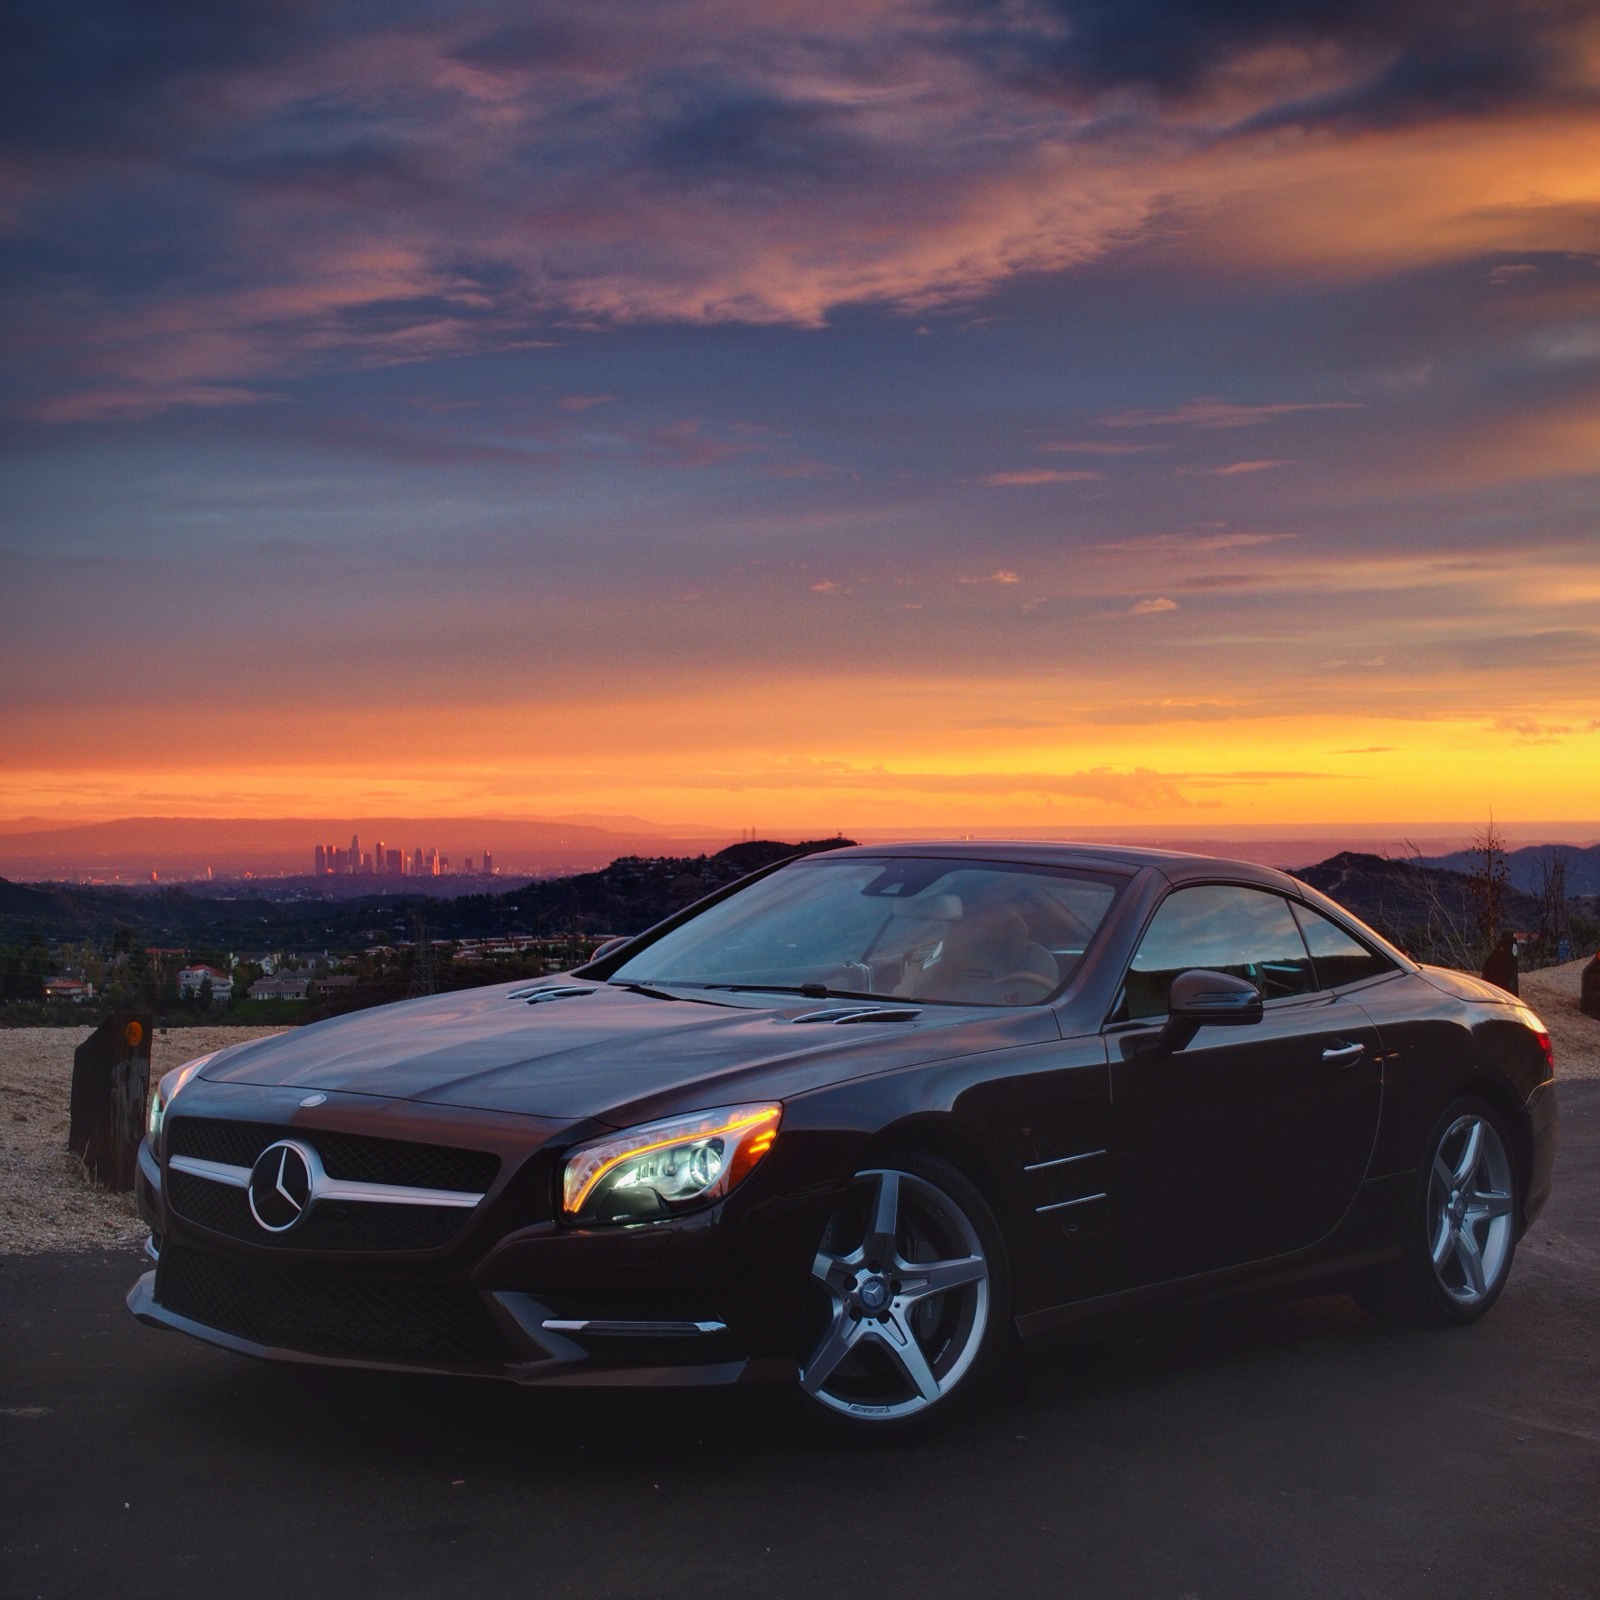 Mercedes-Benz photo with the Los Angeles skyline, shot on a Micro four thirds camera